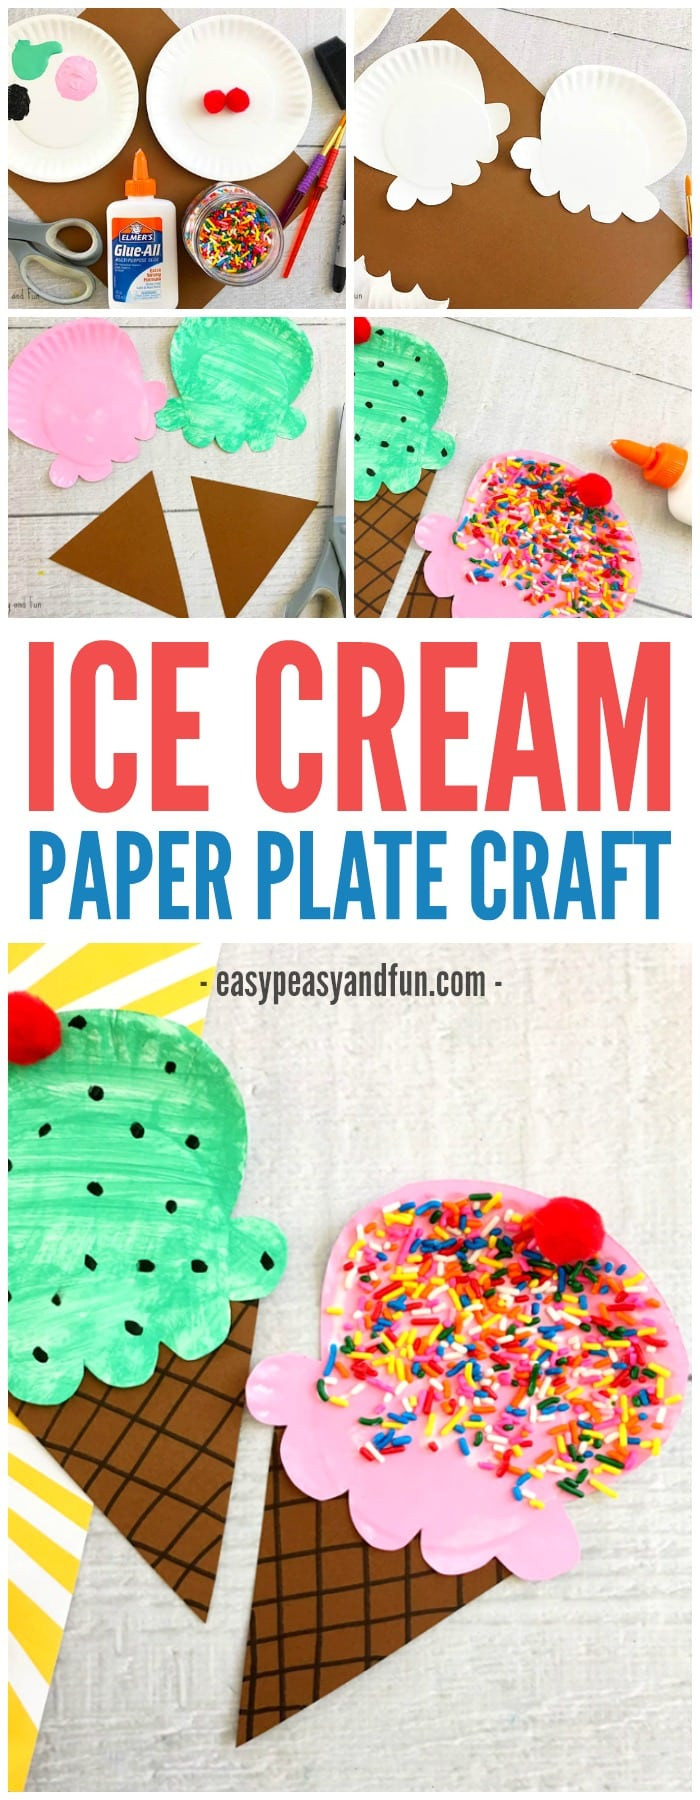 Best ideas about Summer Craft Ideas For Preschoolers . Save or Pin Paper Plate Ice Cream Craft Summer Craft Idea for Kids Now.